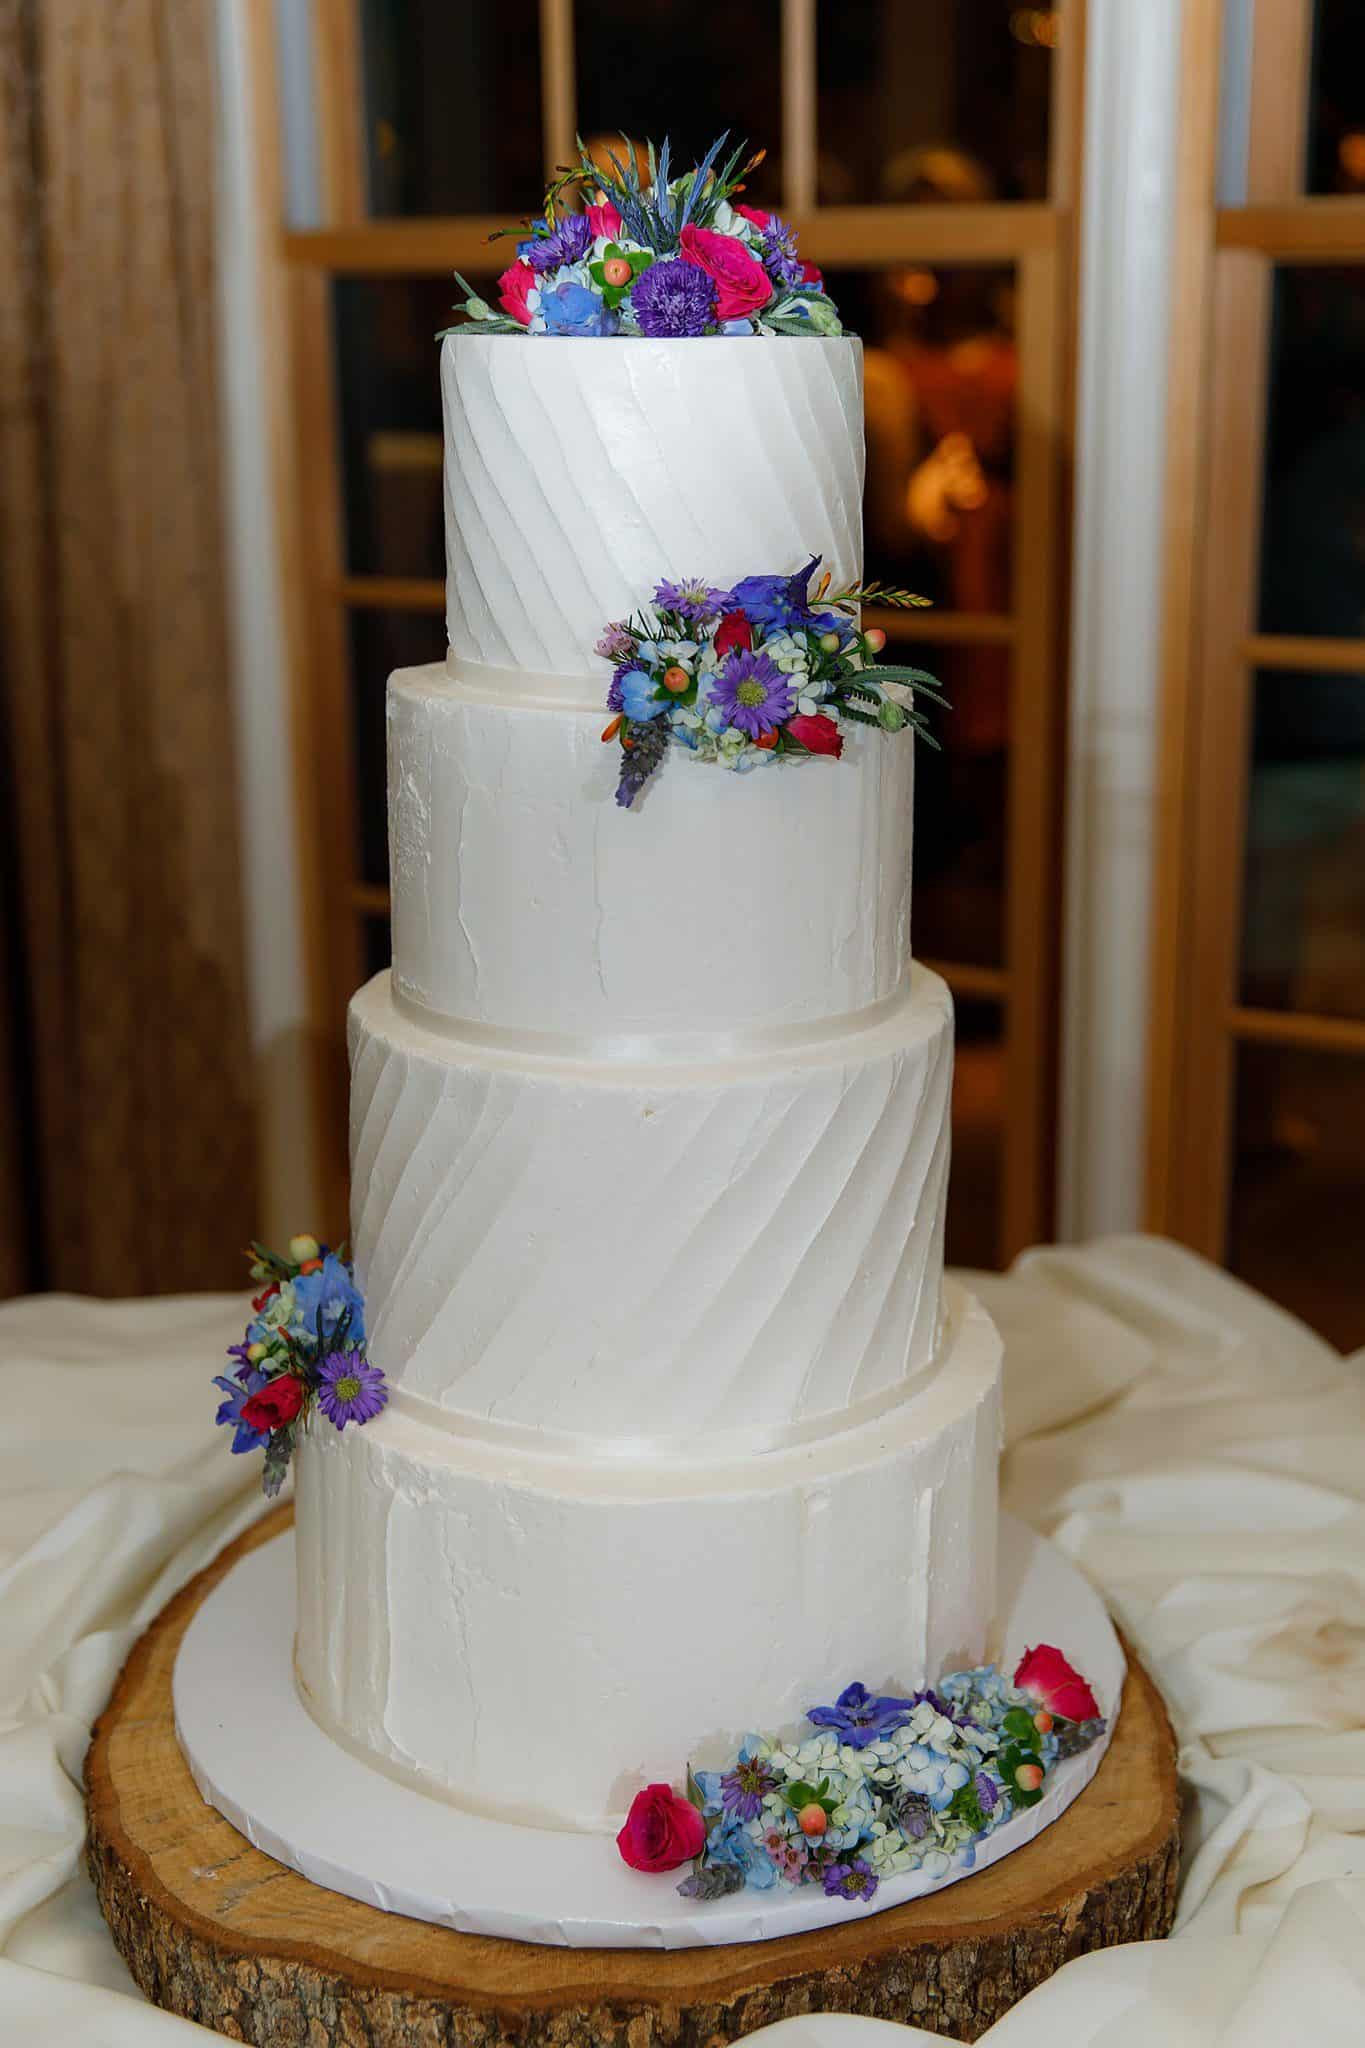 4-tiered wedding cake with colorful flowers